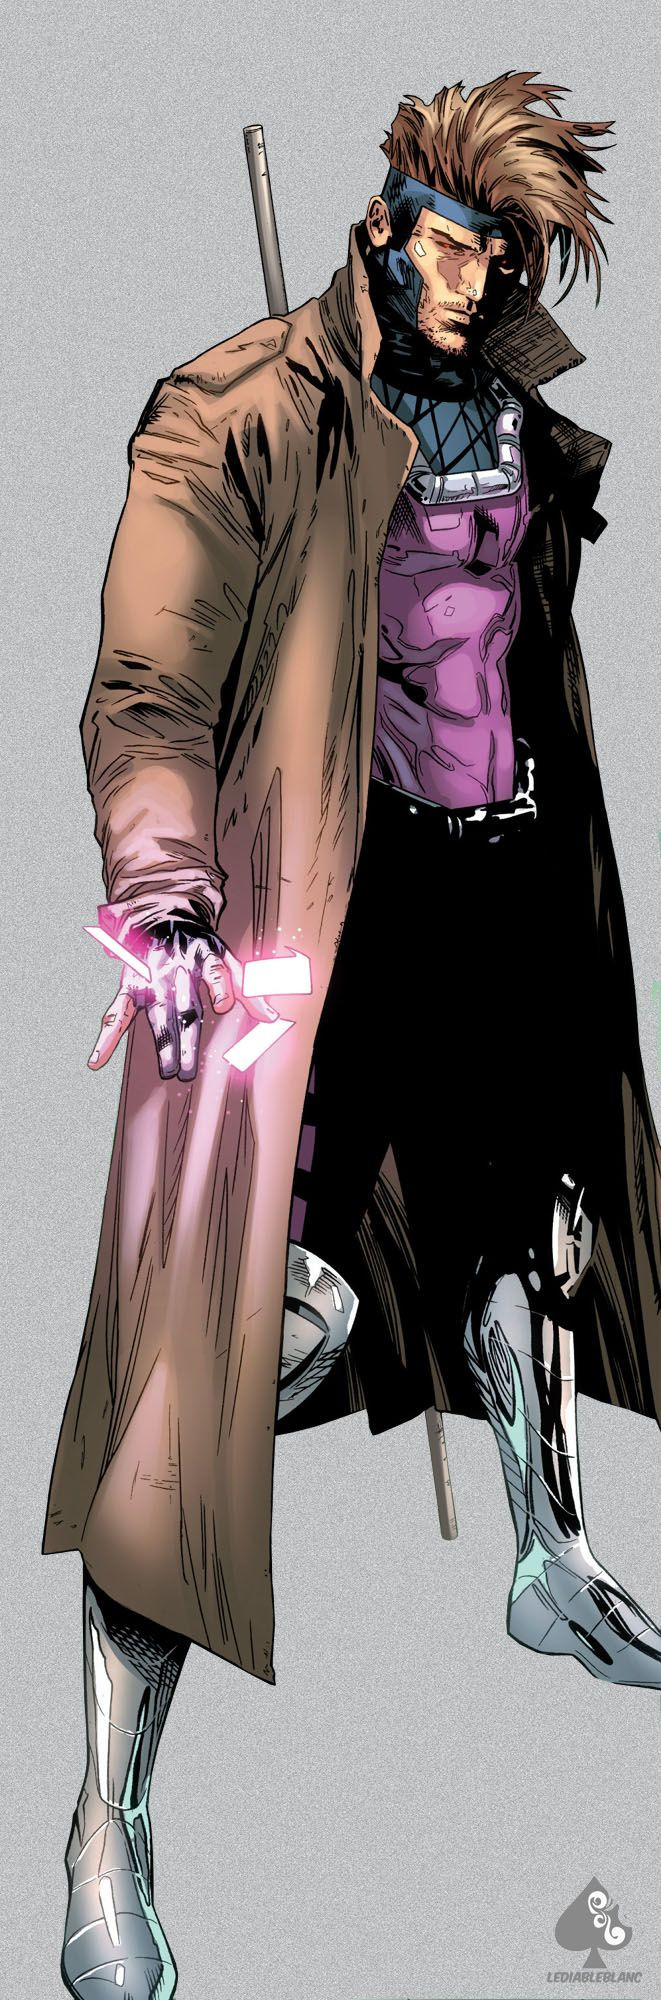 """Gambit by Clay Mann. """"A mutant, Gambit can mentally create, control and manipulate pure kinetic energy to his every whim and desire. He is also incredibly knowledgeable and skilled in card-throwing, hand-to-hand combat, and the use of a bō."""" -Wiki"""